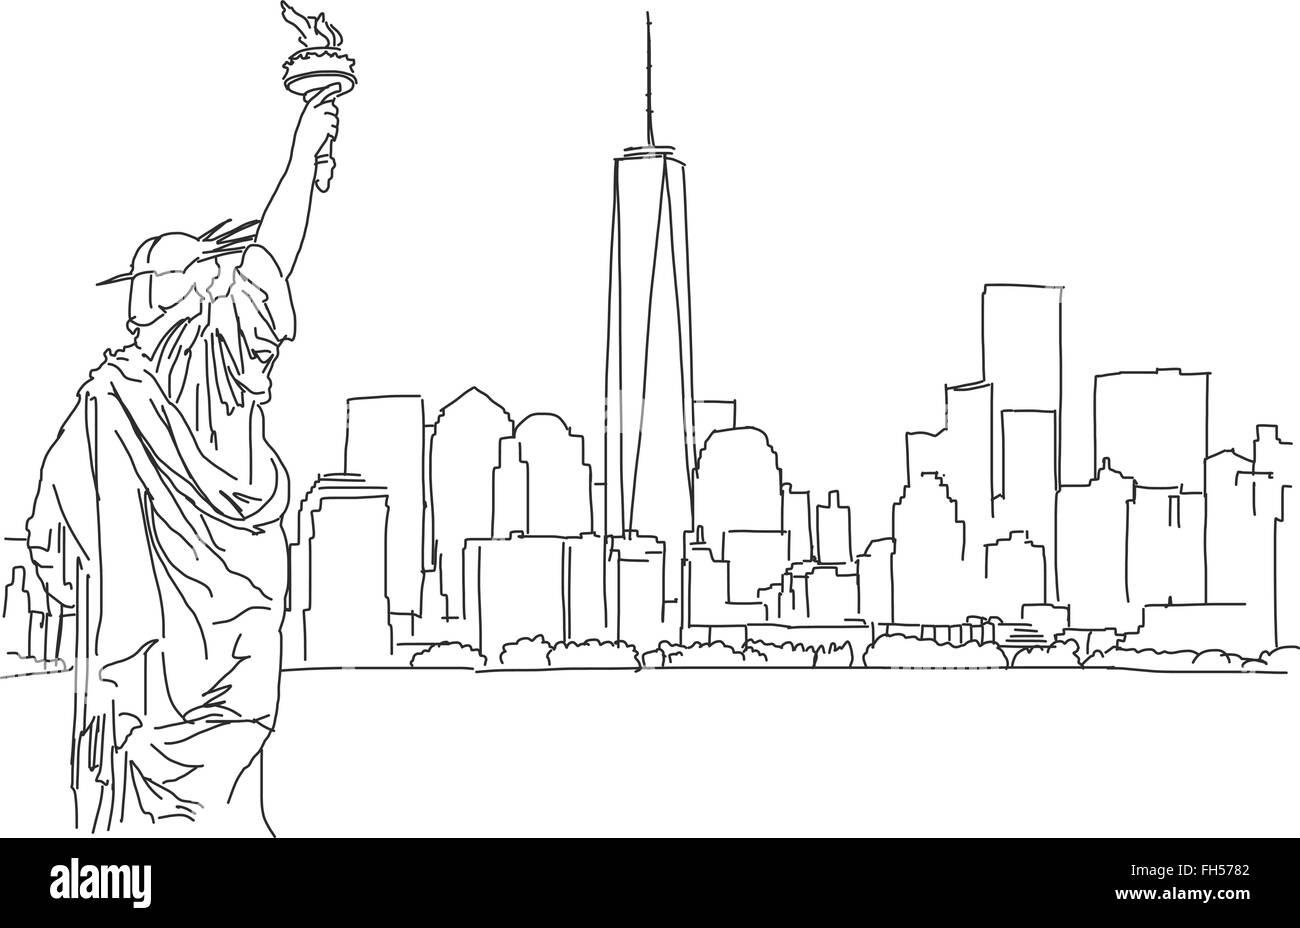 Free hand sketch of New York City skyline. Vector Outline Scribble - Stock Image